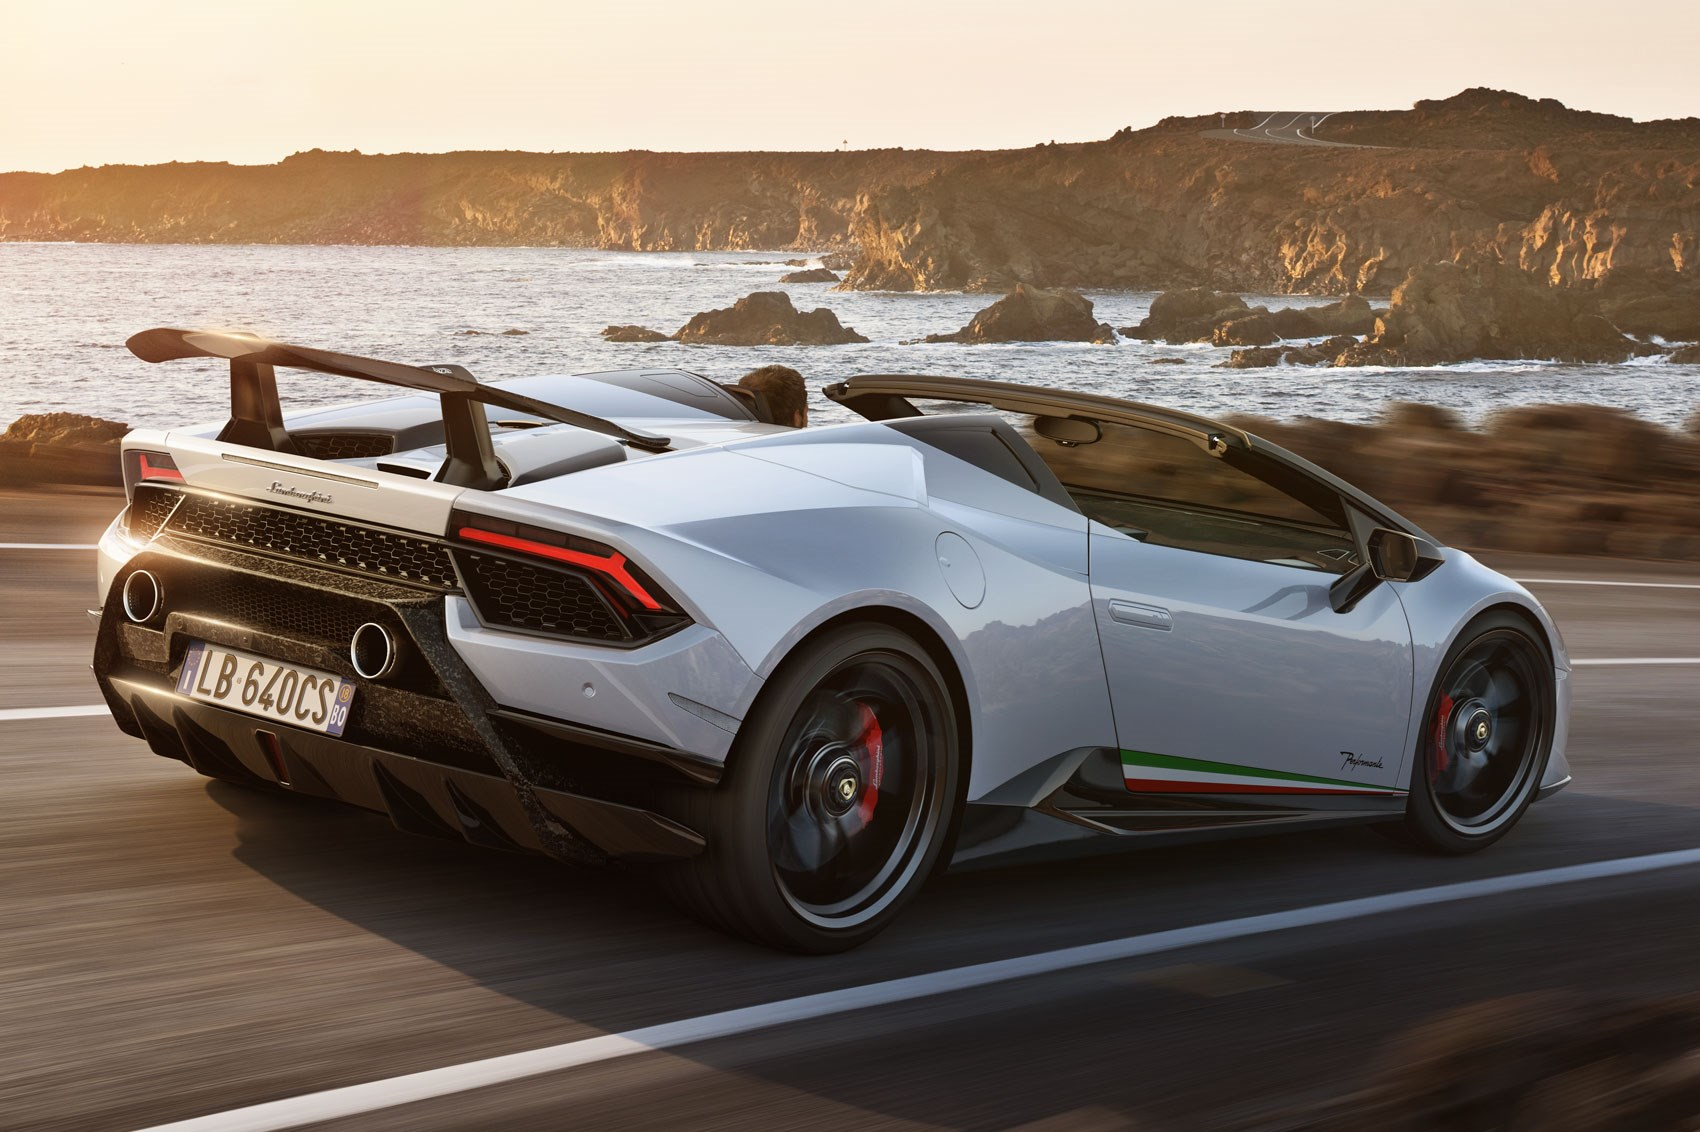 The 2019 Lamborghini Huracan Performante Spyder